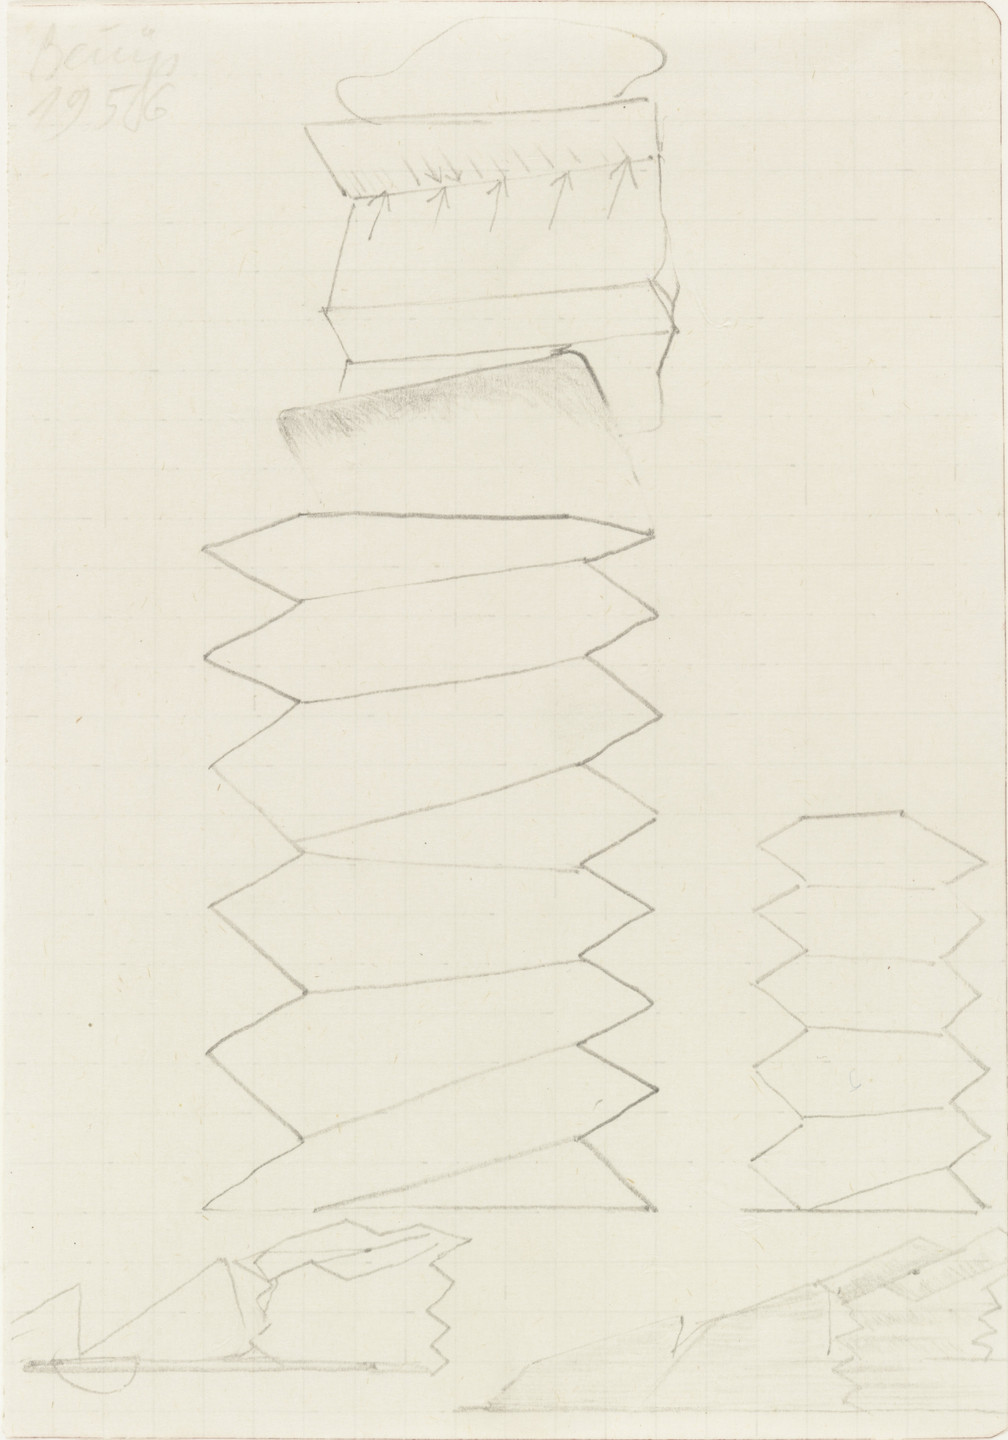 Joseph Beuys. Untitled. 1956